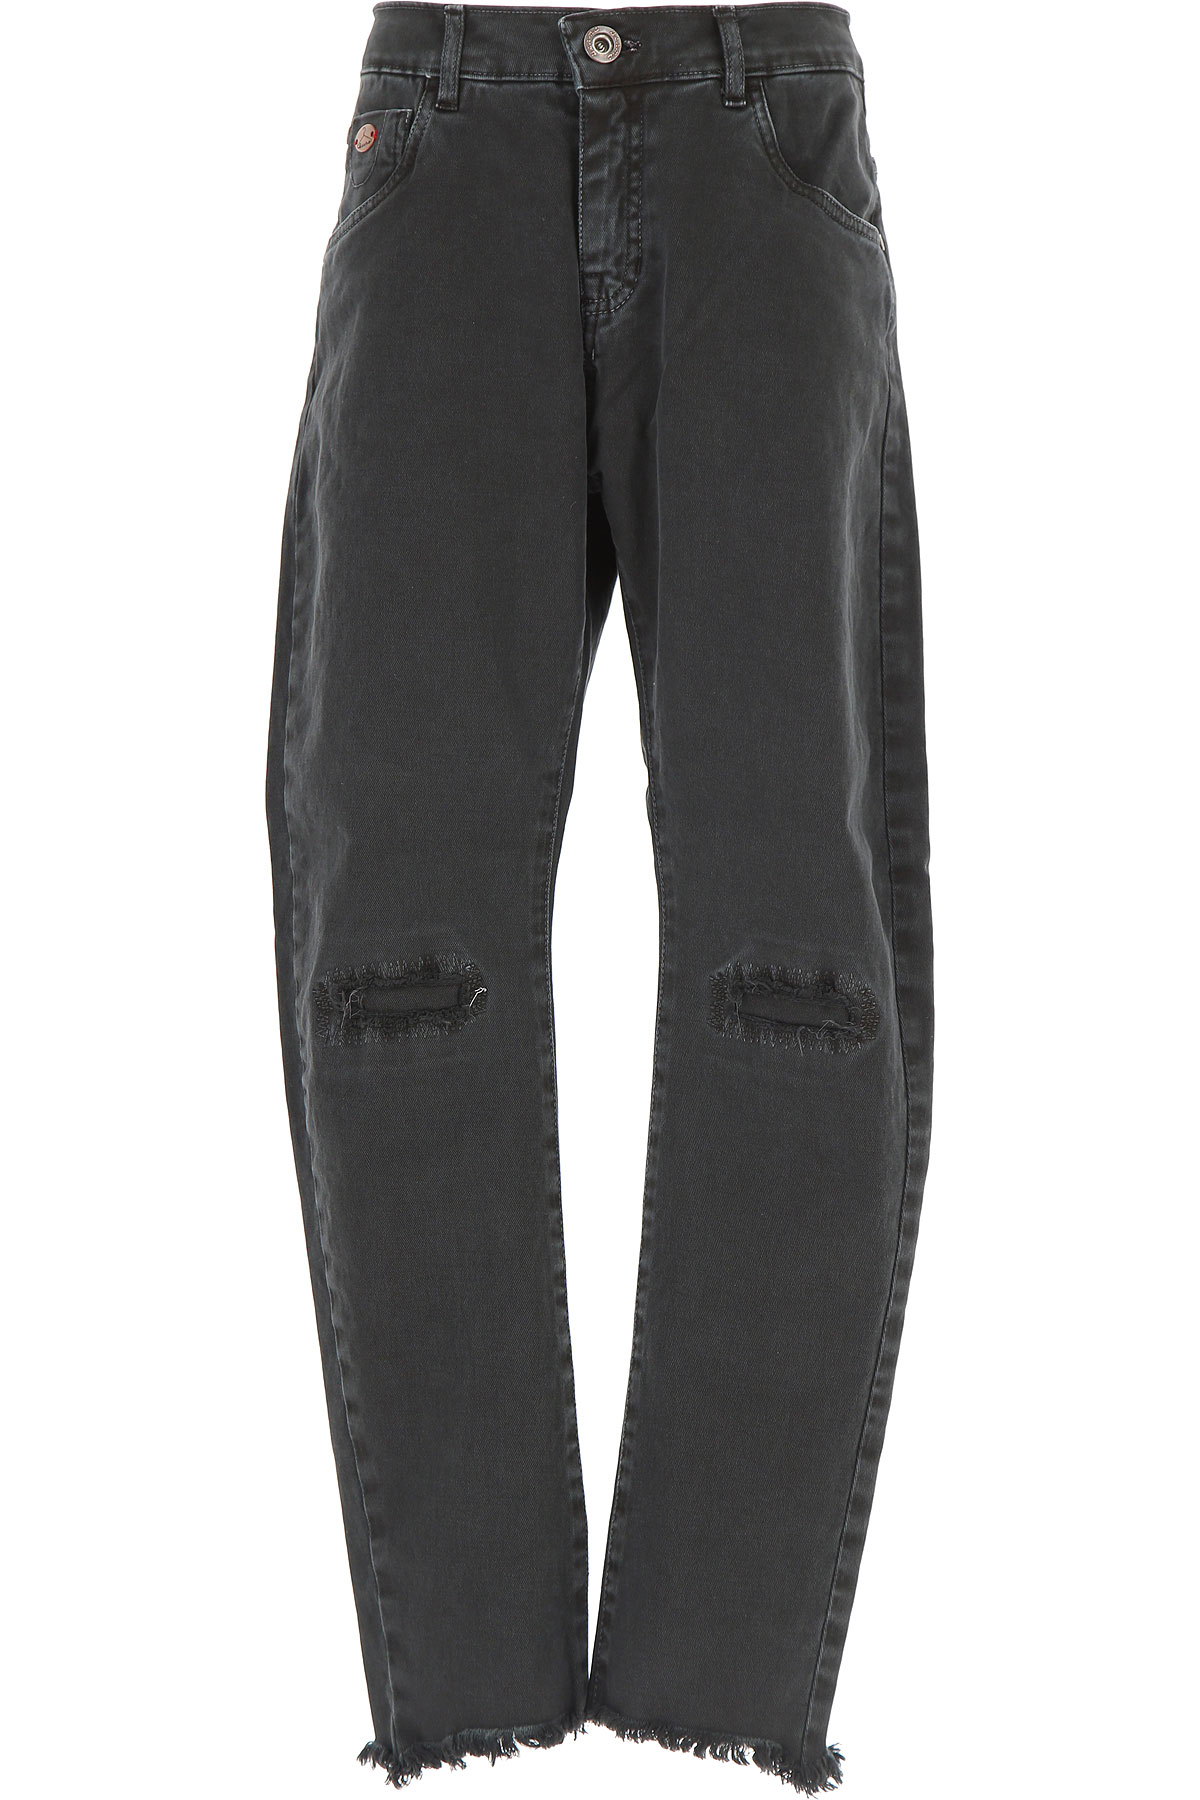 Image of Berna Kids Jeans for Boys, Black, Cotton, 2017, 14Y 16Y